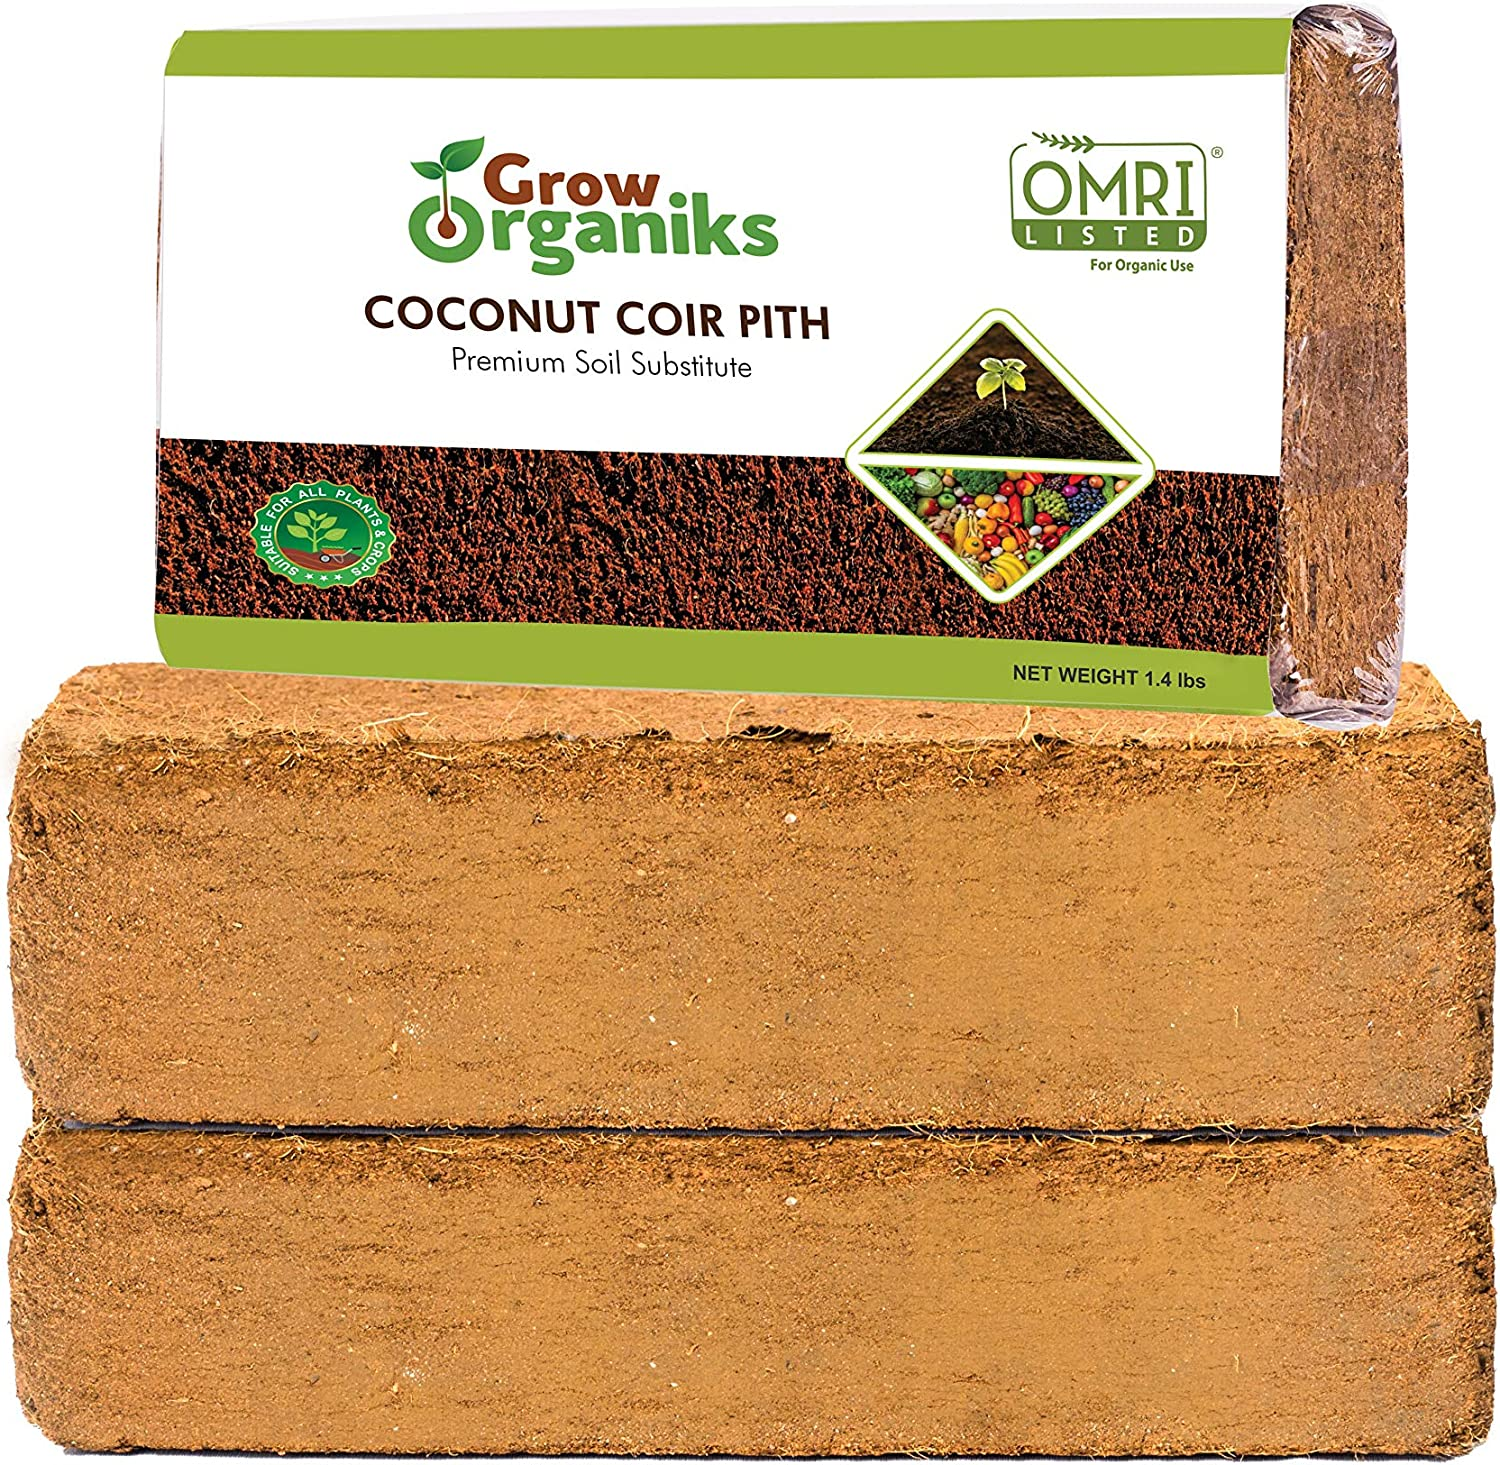 Grow Organiks Coco Coir Pith,Coco Peat Brick-1.4 lbs EA,(2 Bricks) OMRI Listed for Organic Use, Expansion Between 10-12L,Universal Potting Substrate for All Plants & Crops.